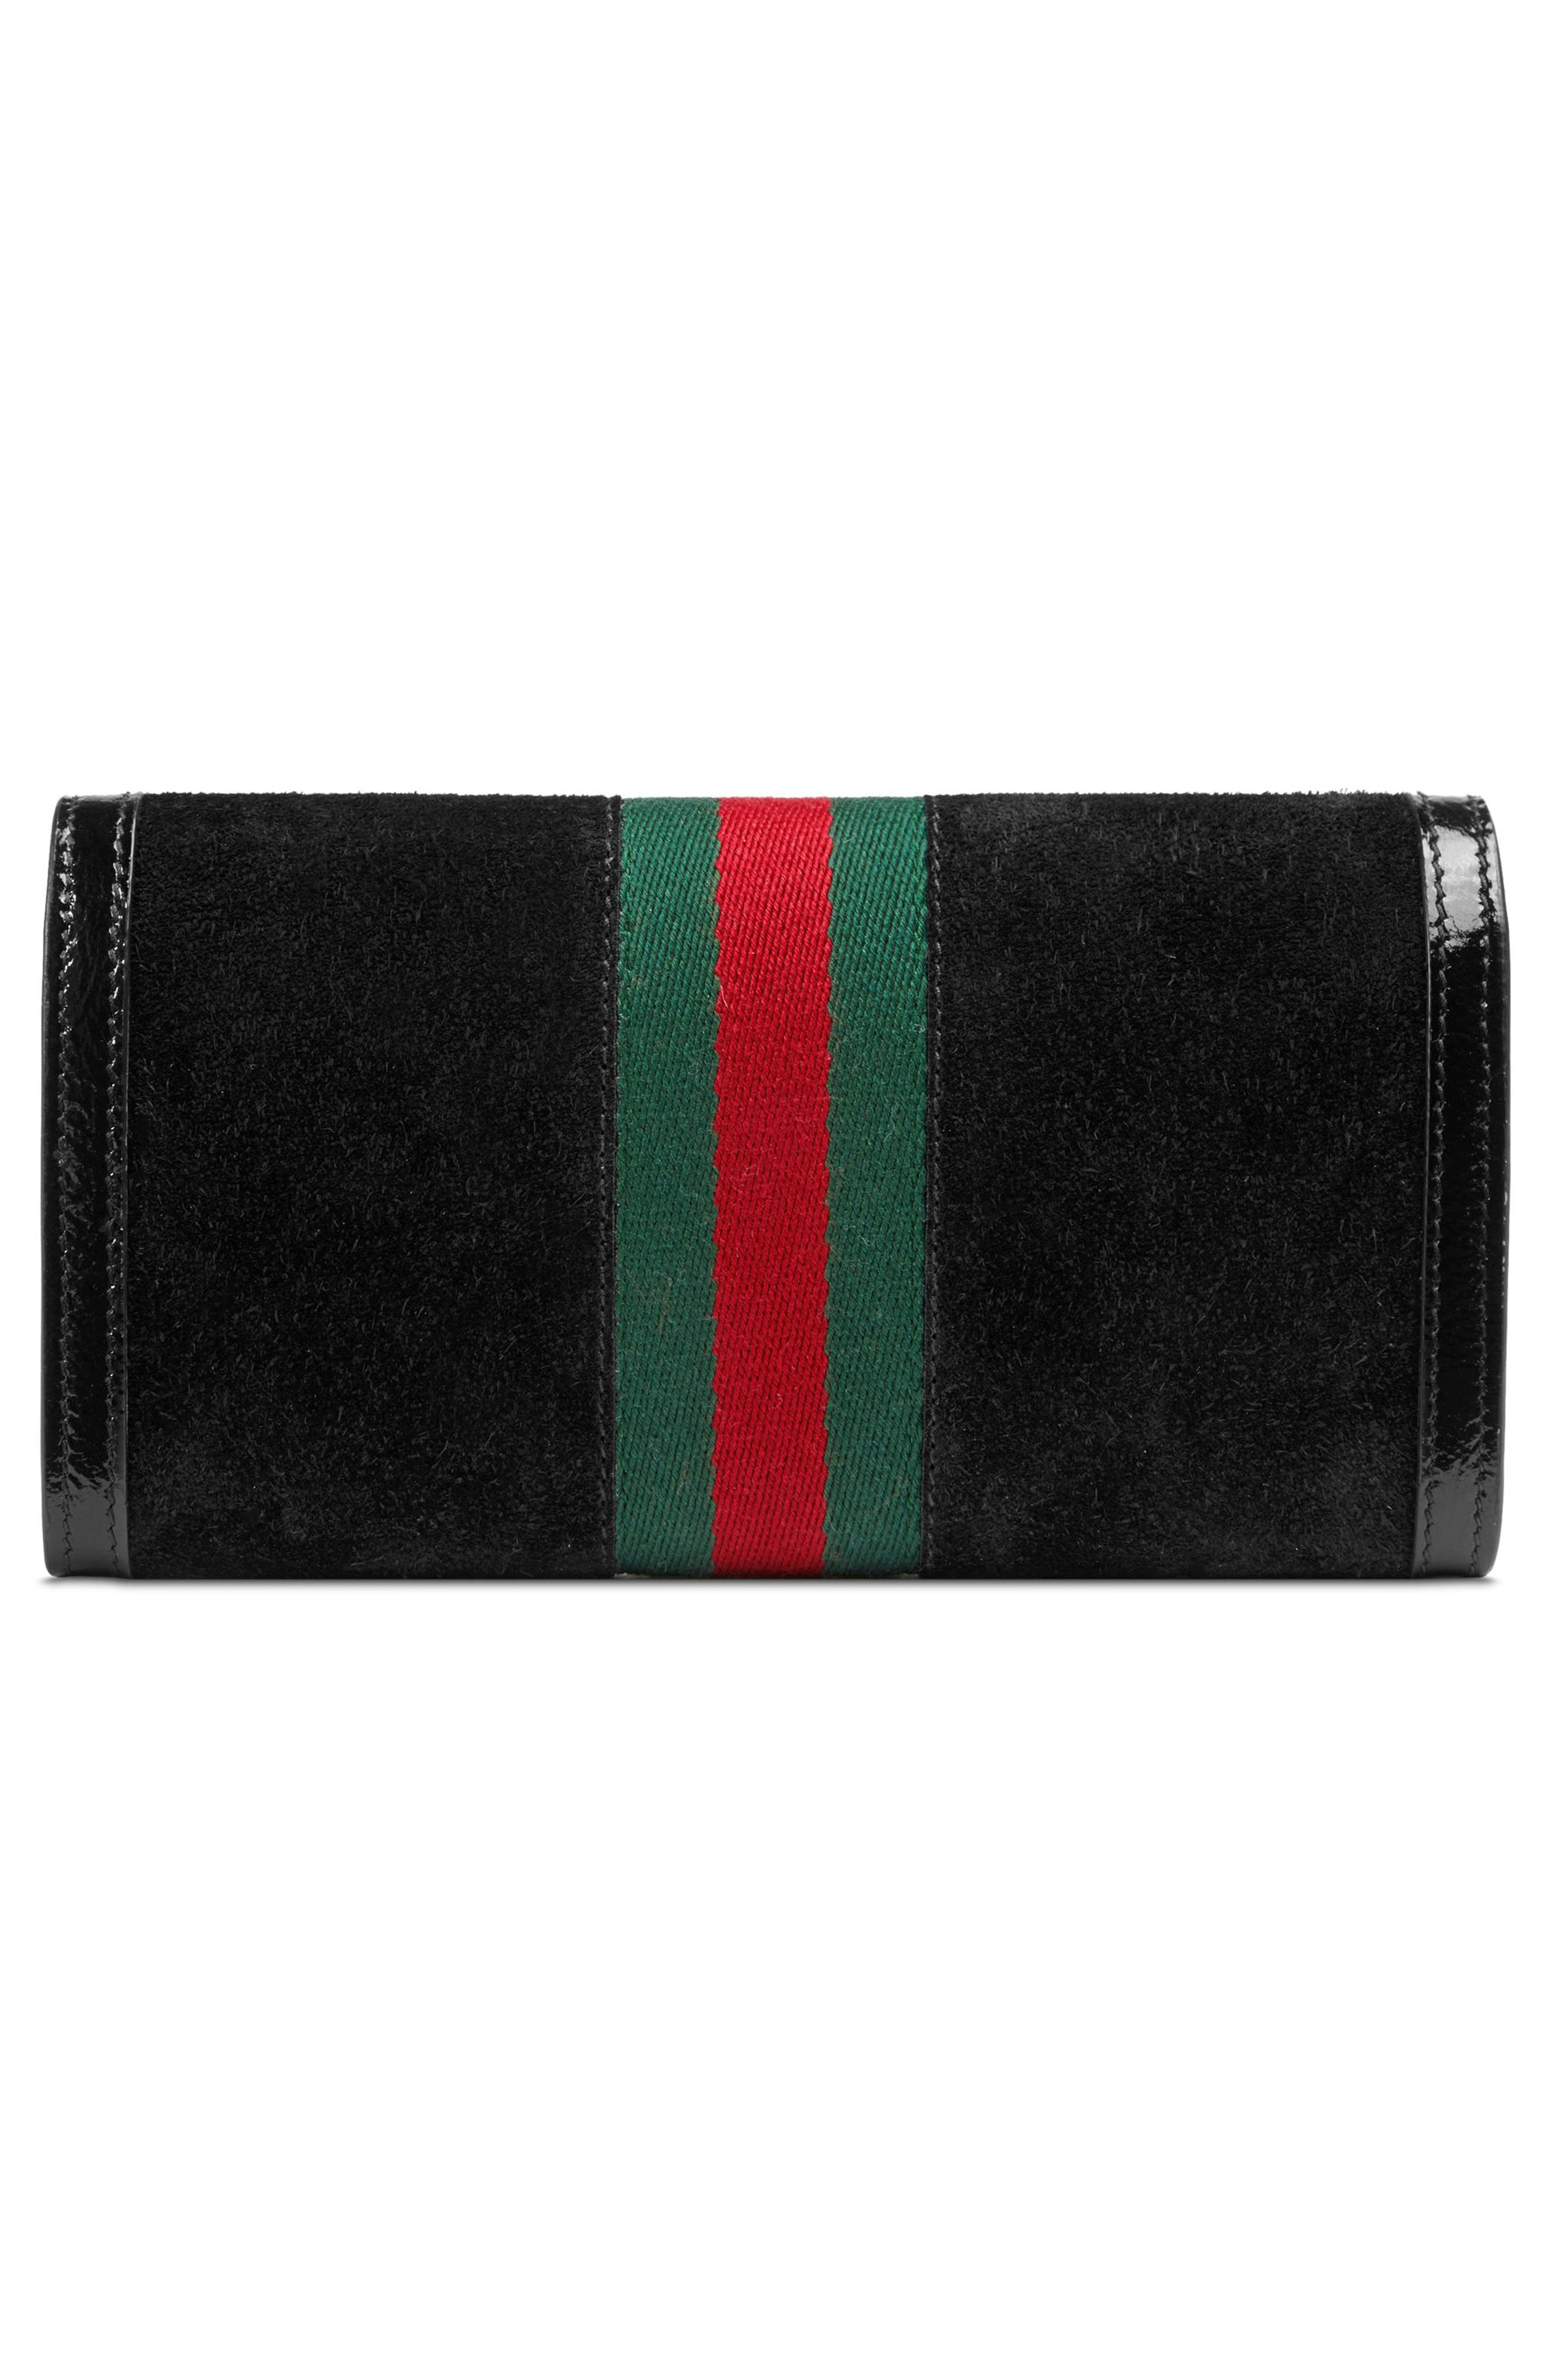 Alternate Image 3  - Gucci Ophidia Suede Continental Wallet